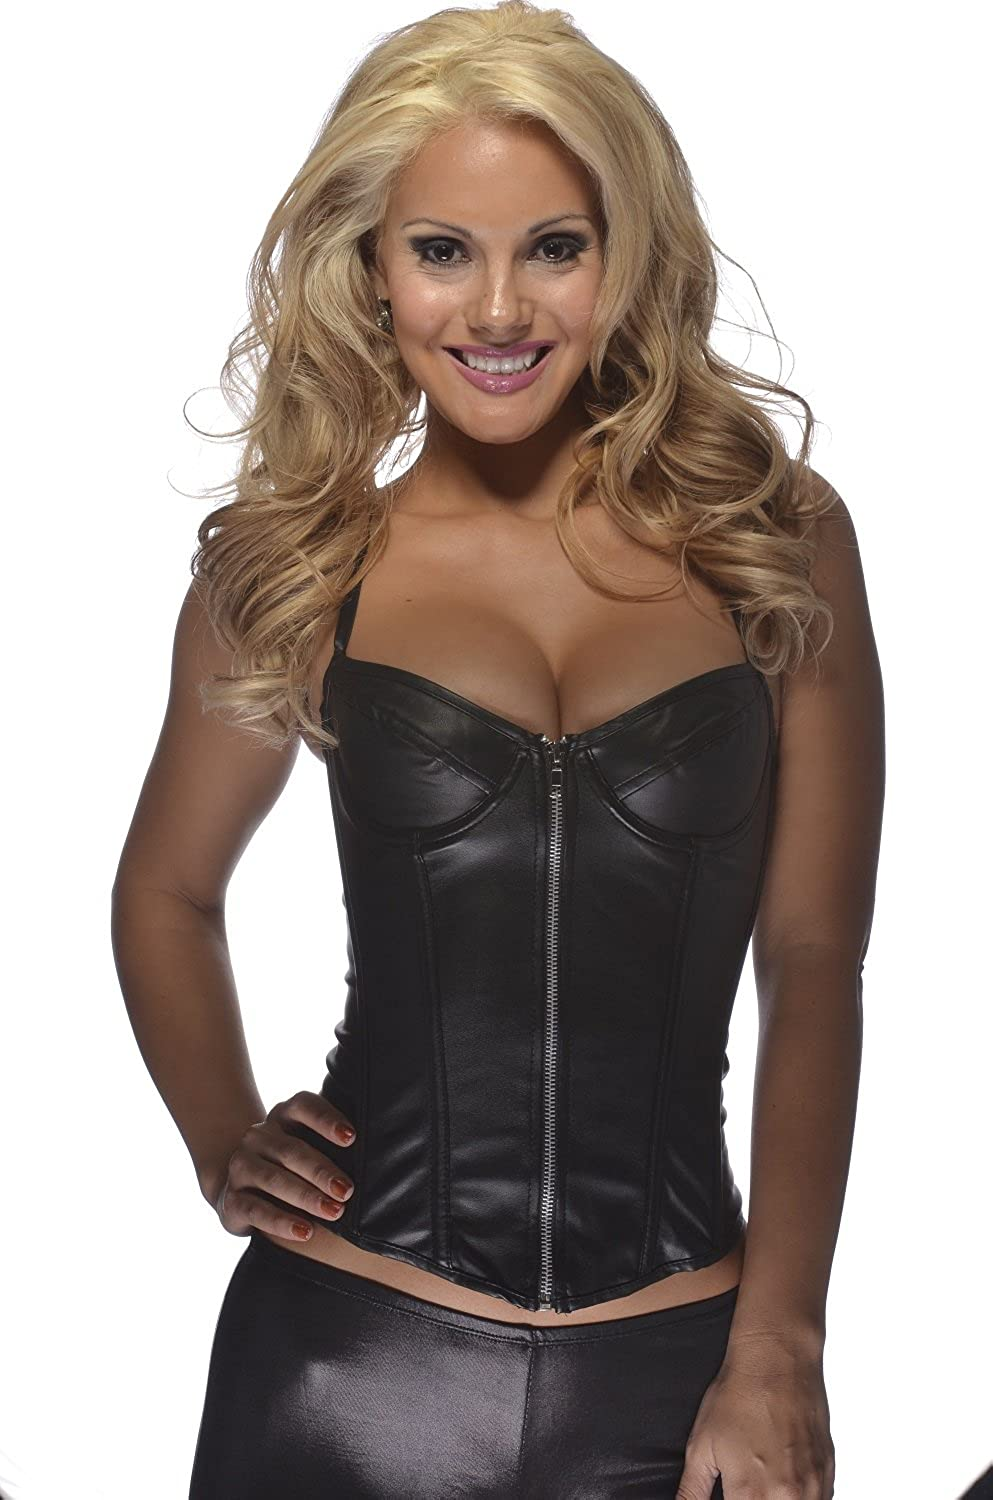 Bonitaz womens plus-size Leather Corset With Adjustable Straps Bonitaz Costumes #021